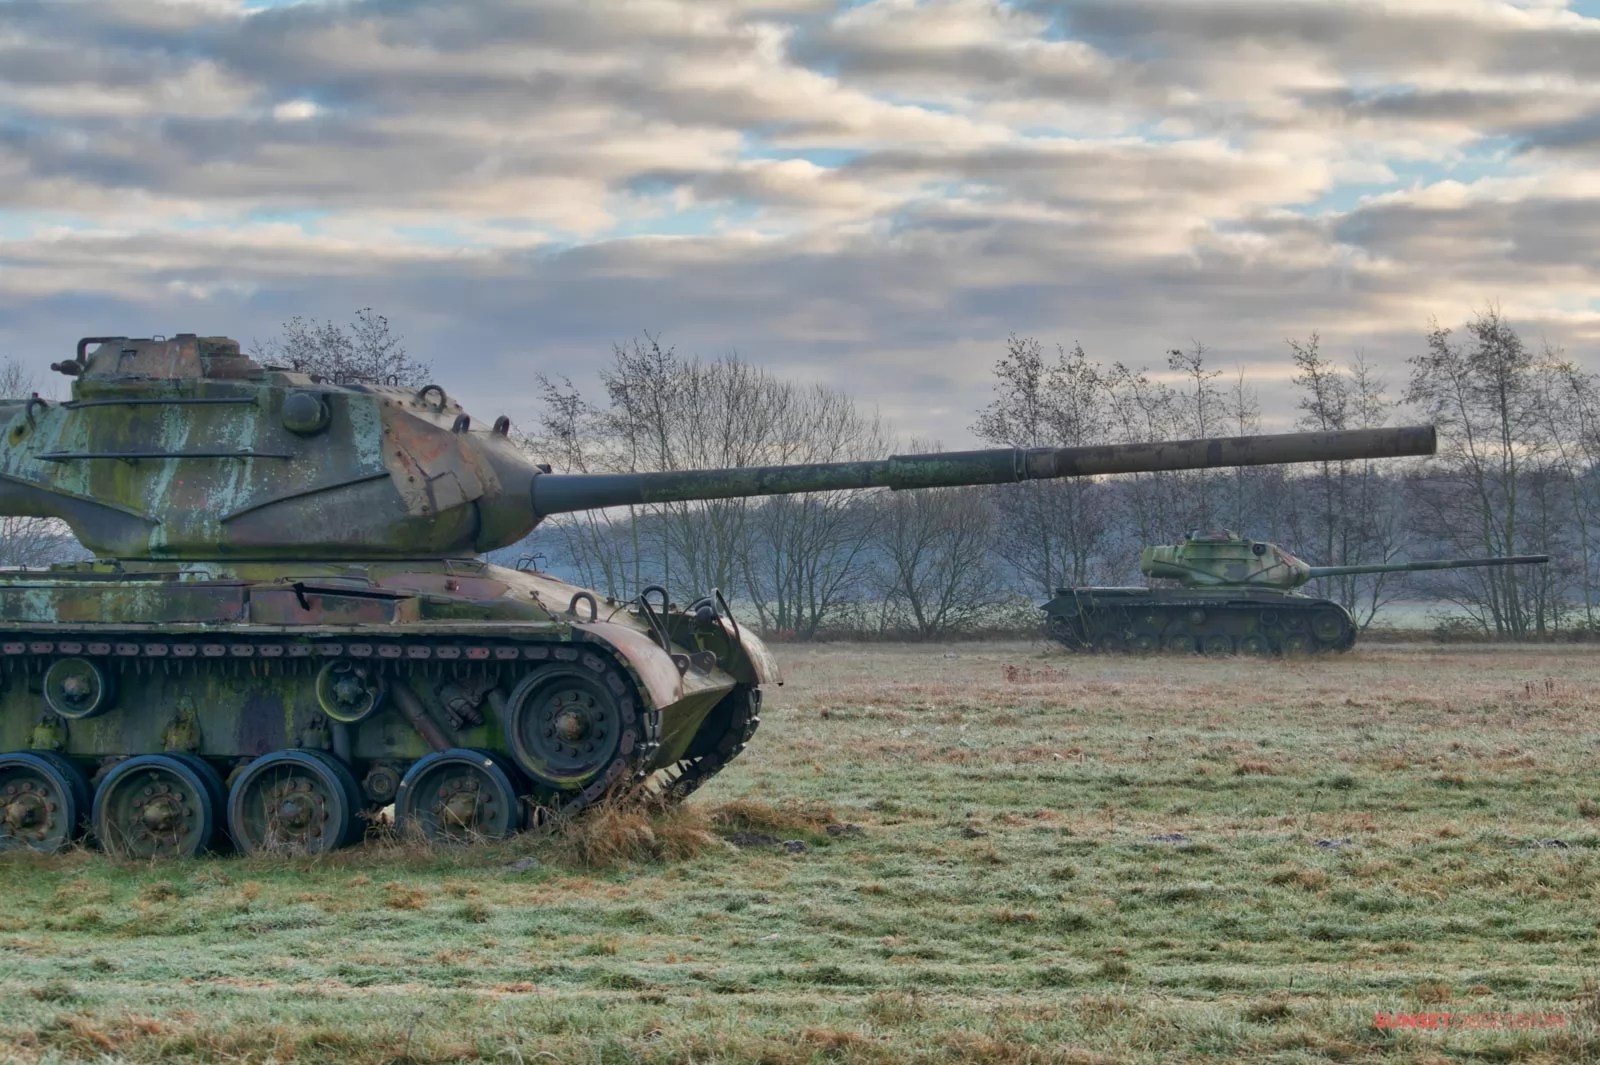 The abandoned tanks are quite well-preserved